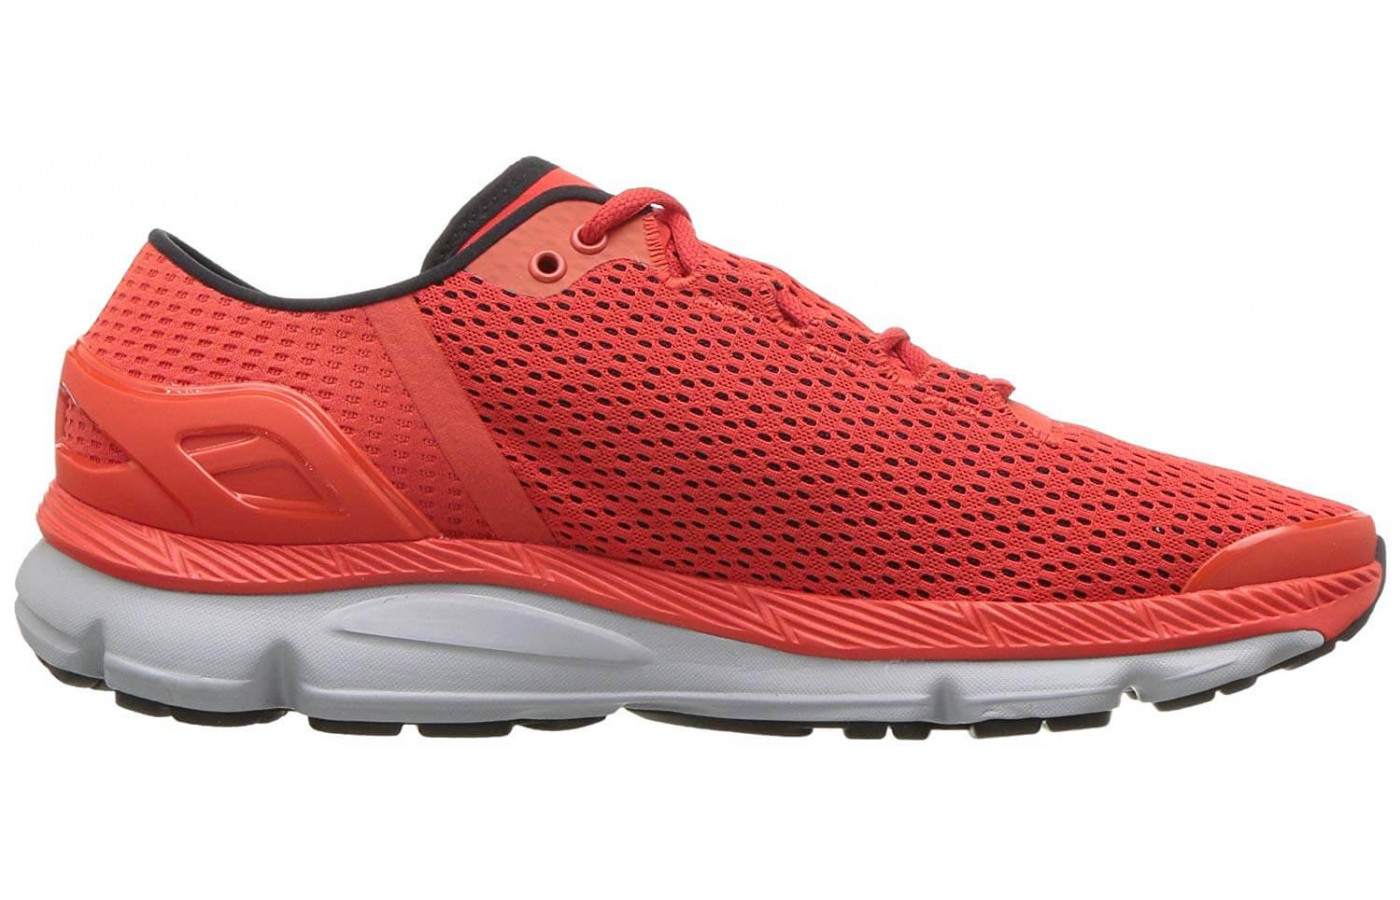 Under Armour SpeedForm Intake 2 side